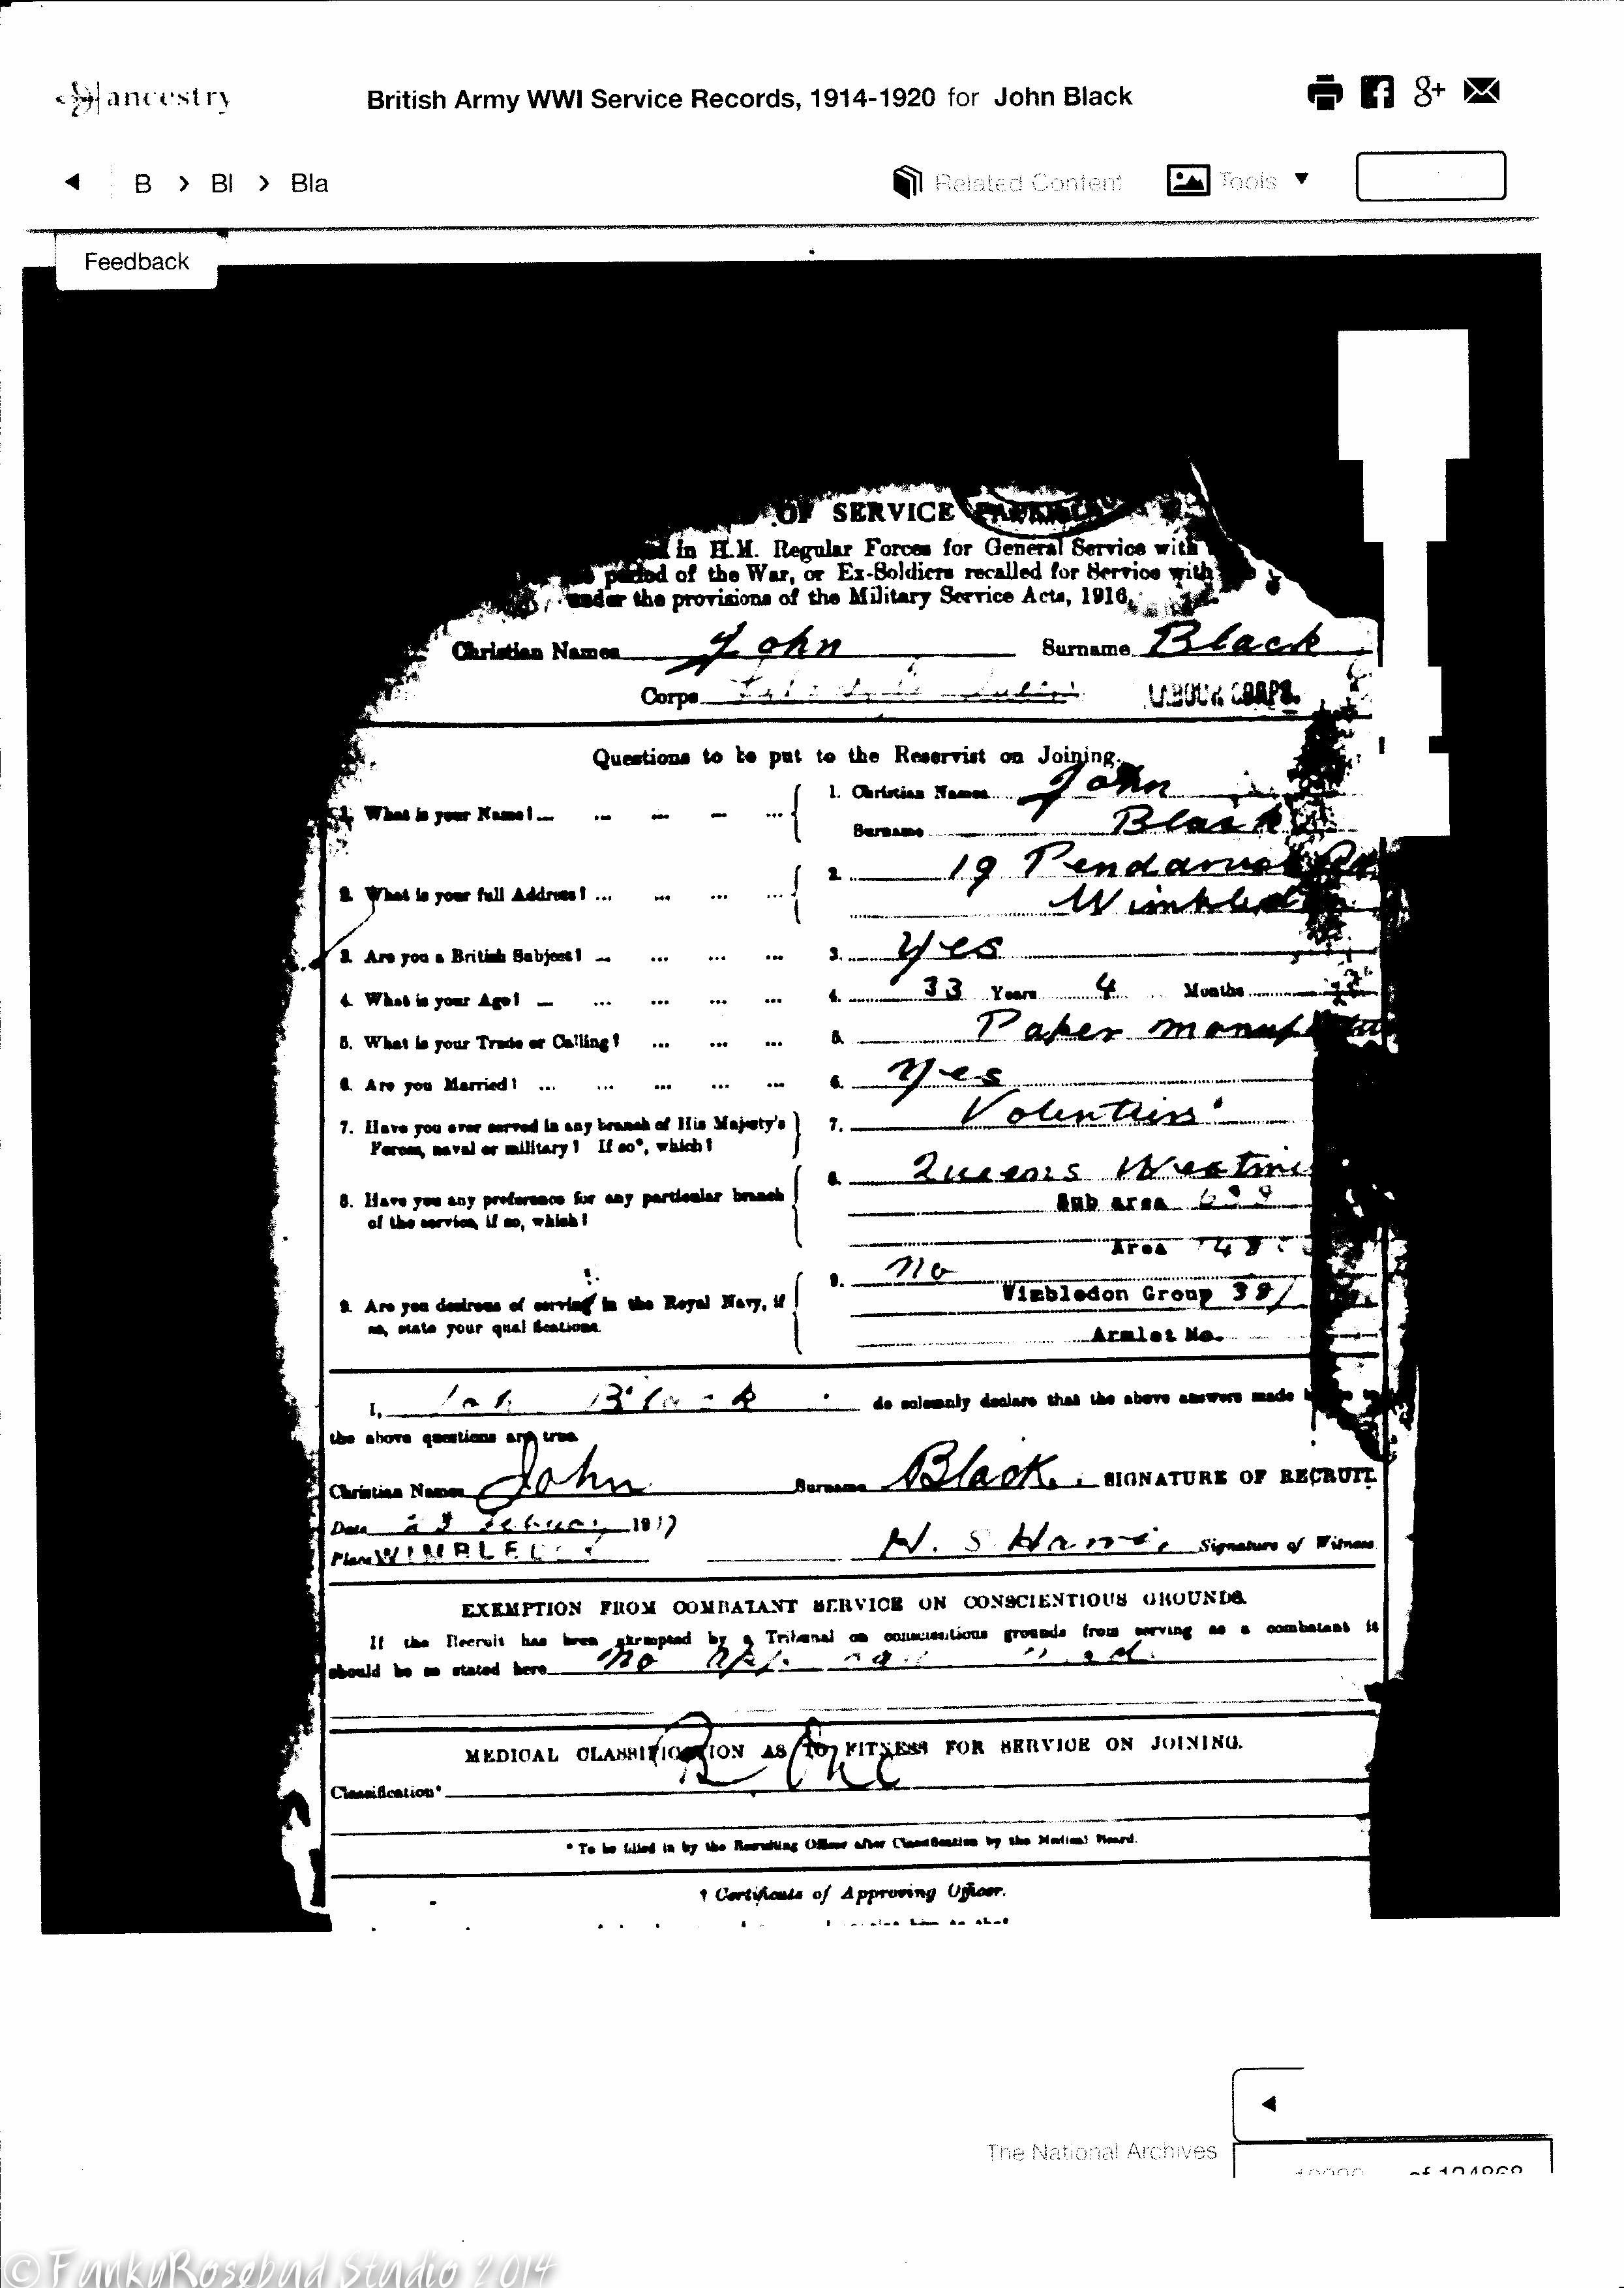 Part of John Black's military record